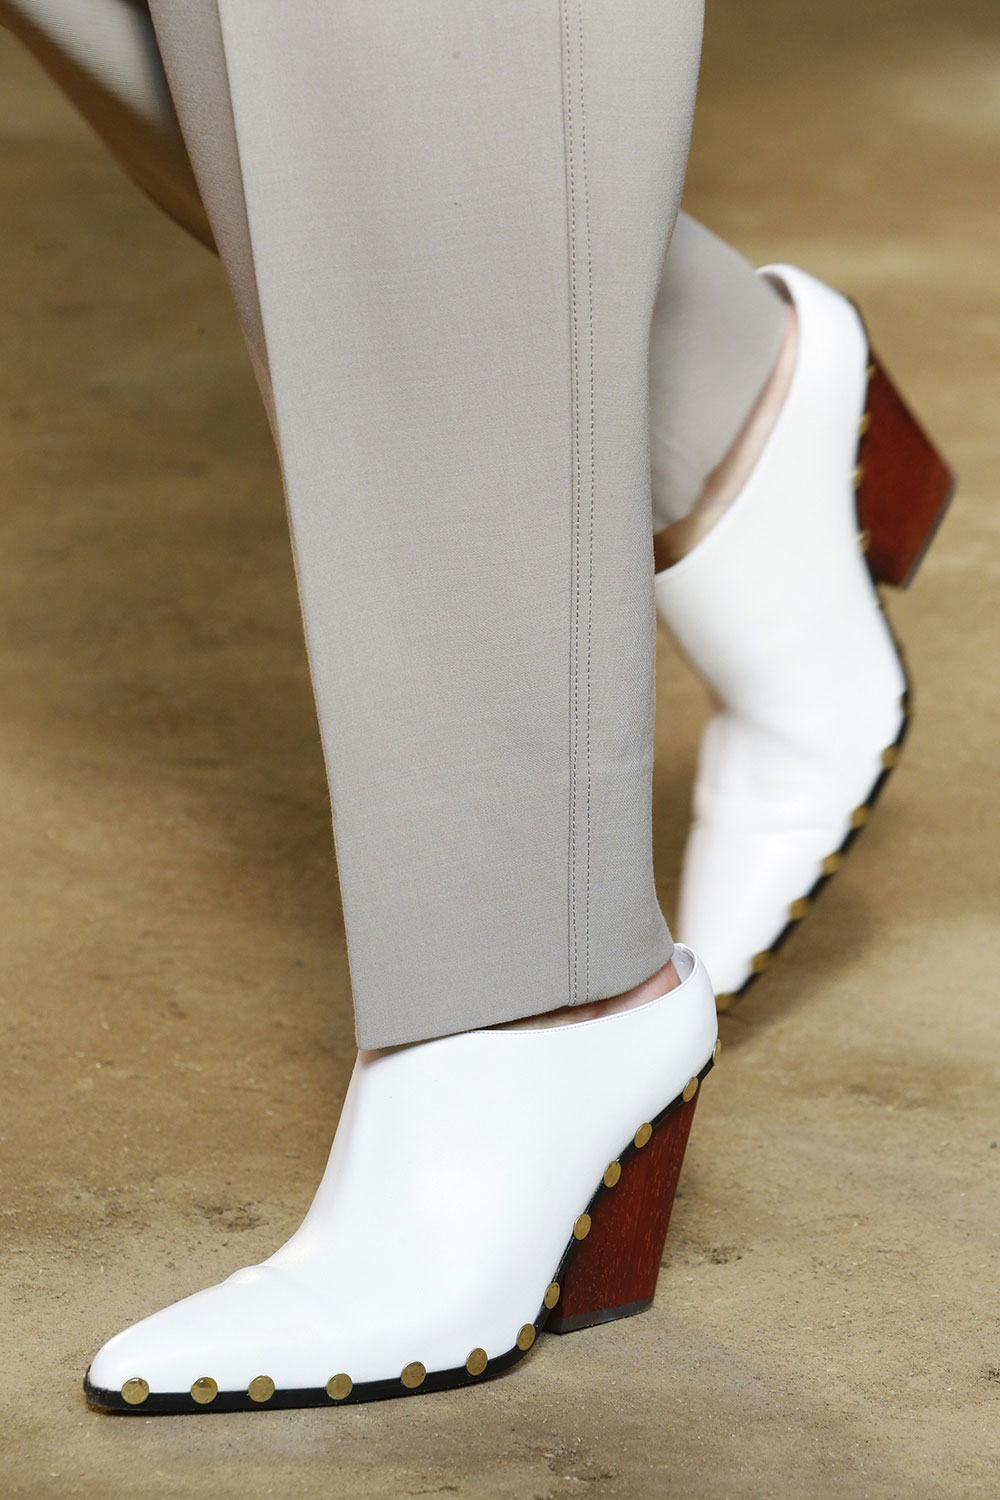 Trend: The White Shoe